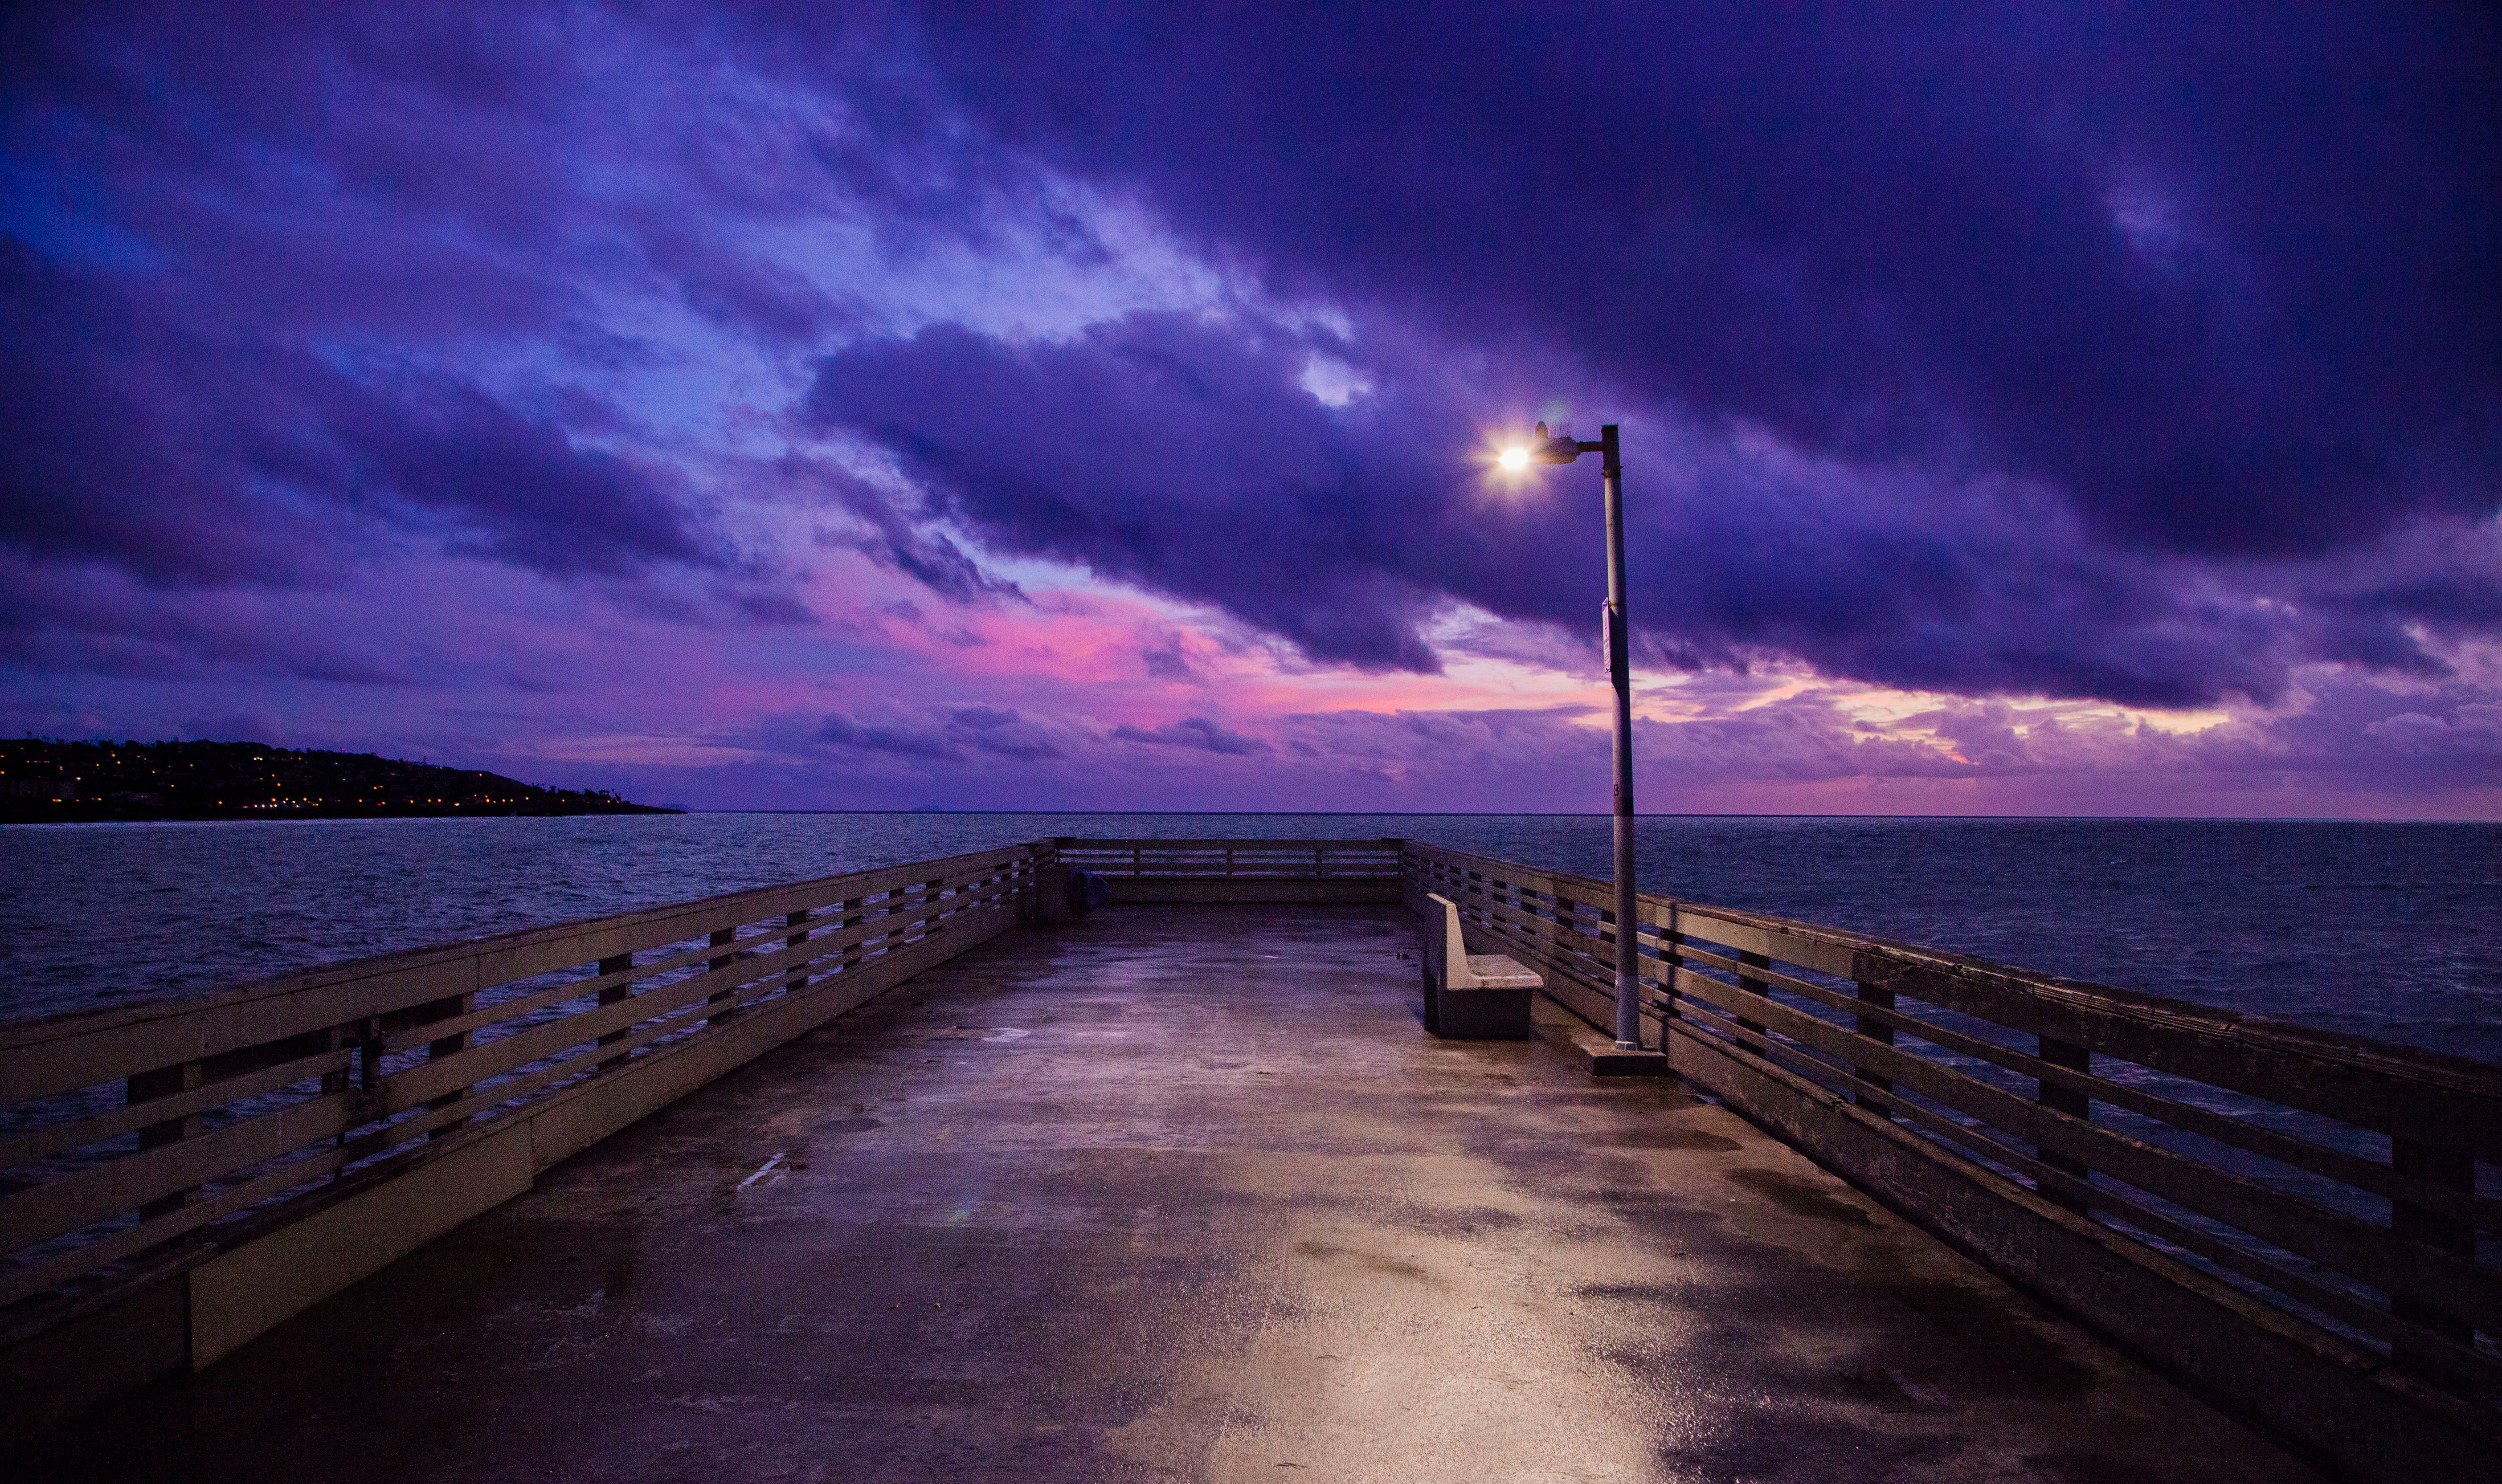 Scenic View From the Dock, Beach, Ocean, Tranquil, Sky, HQ Photo